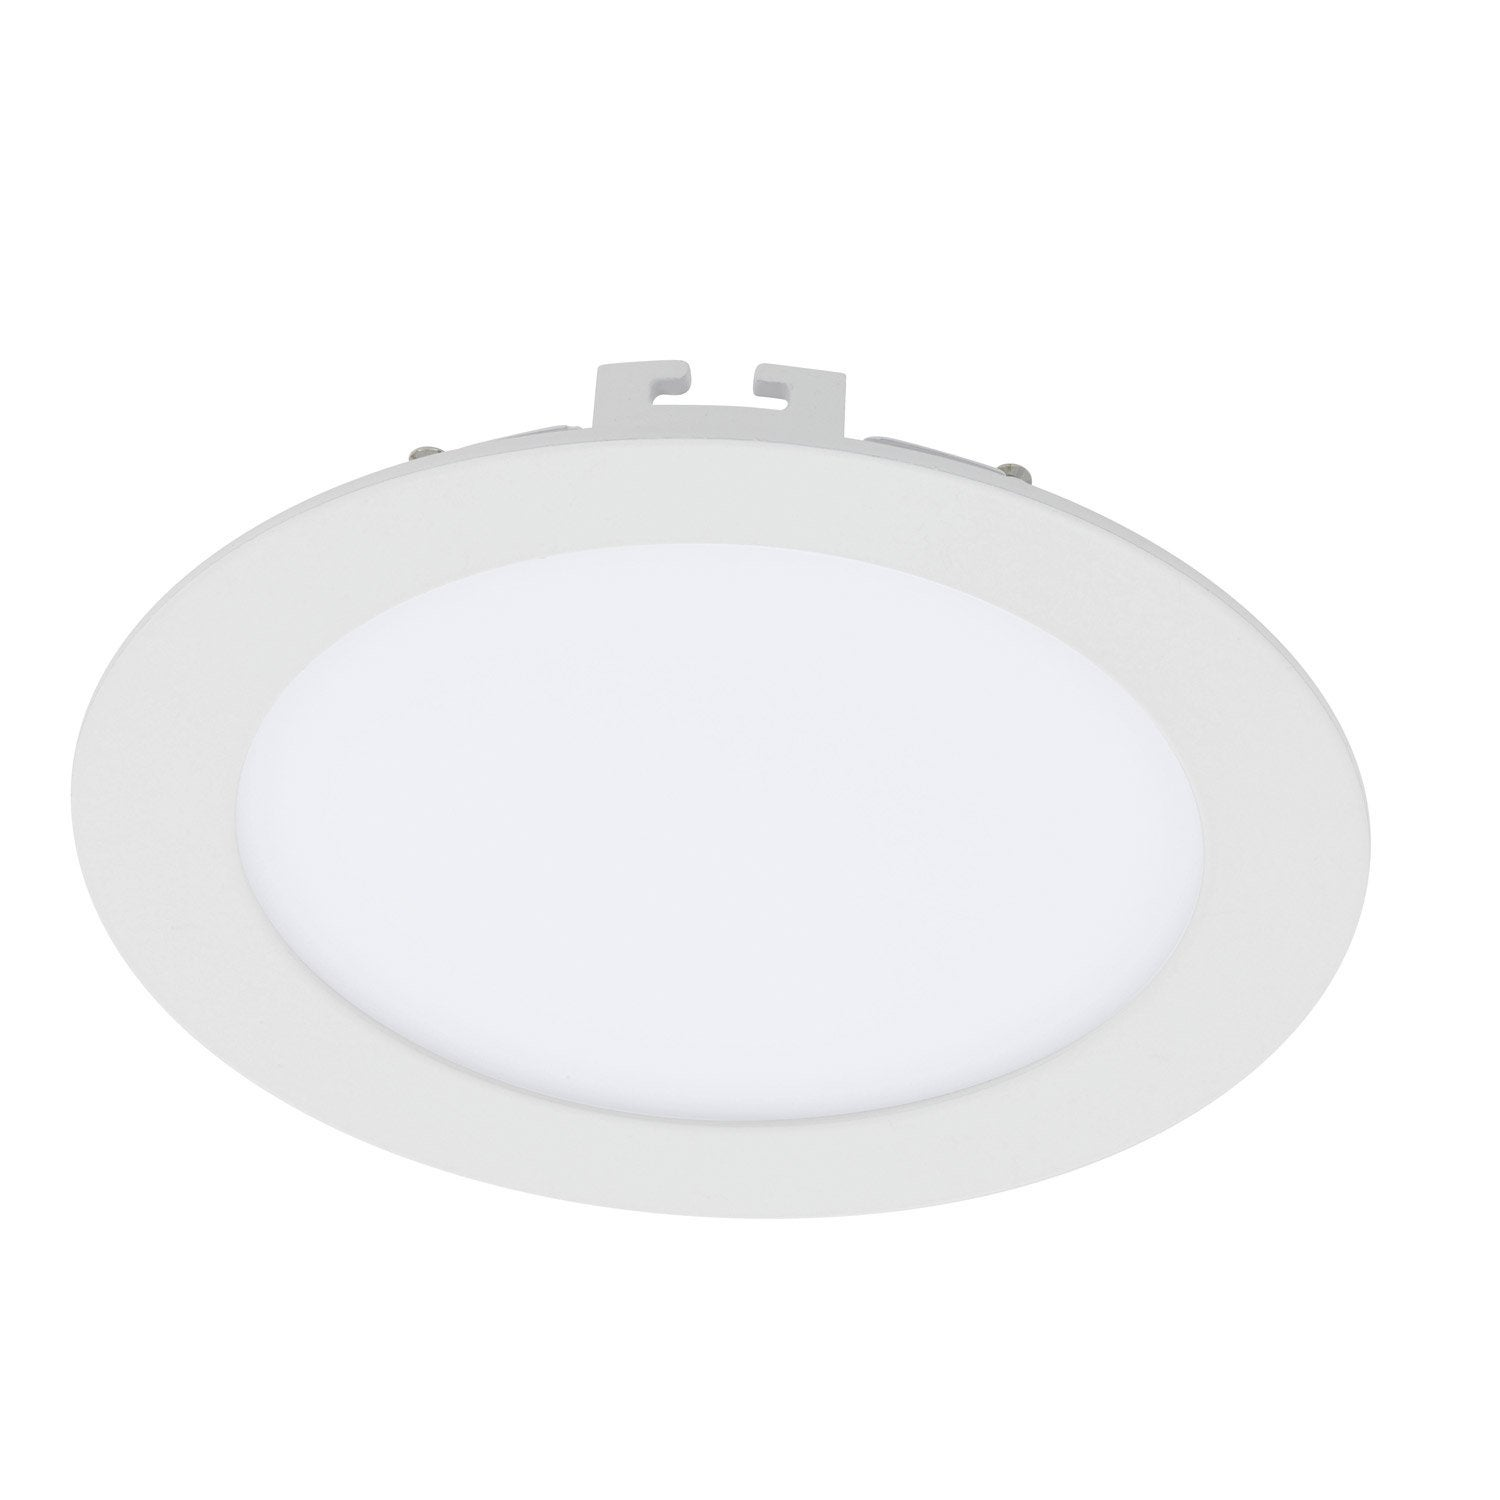 Spot led encastrable plafond cuisine awesome spot led for Spot cuisine design